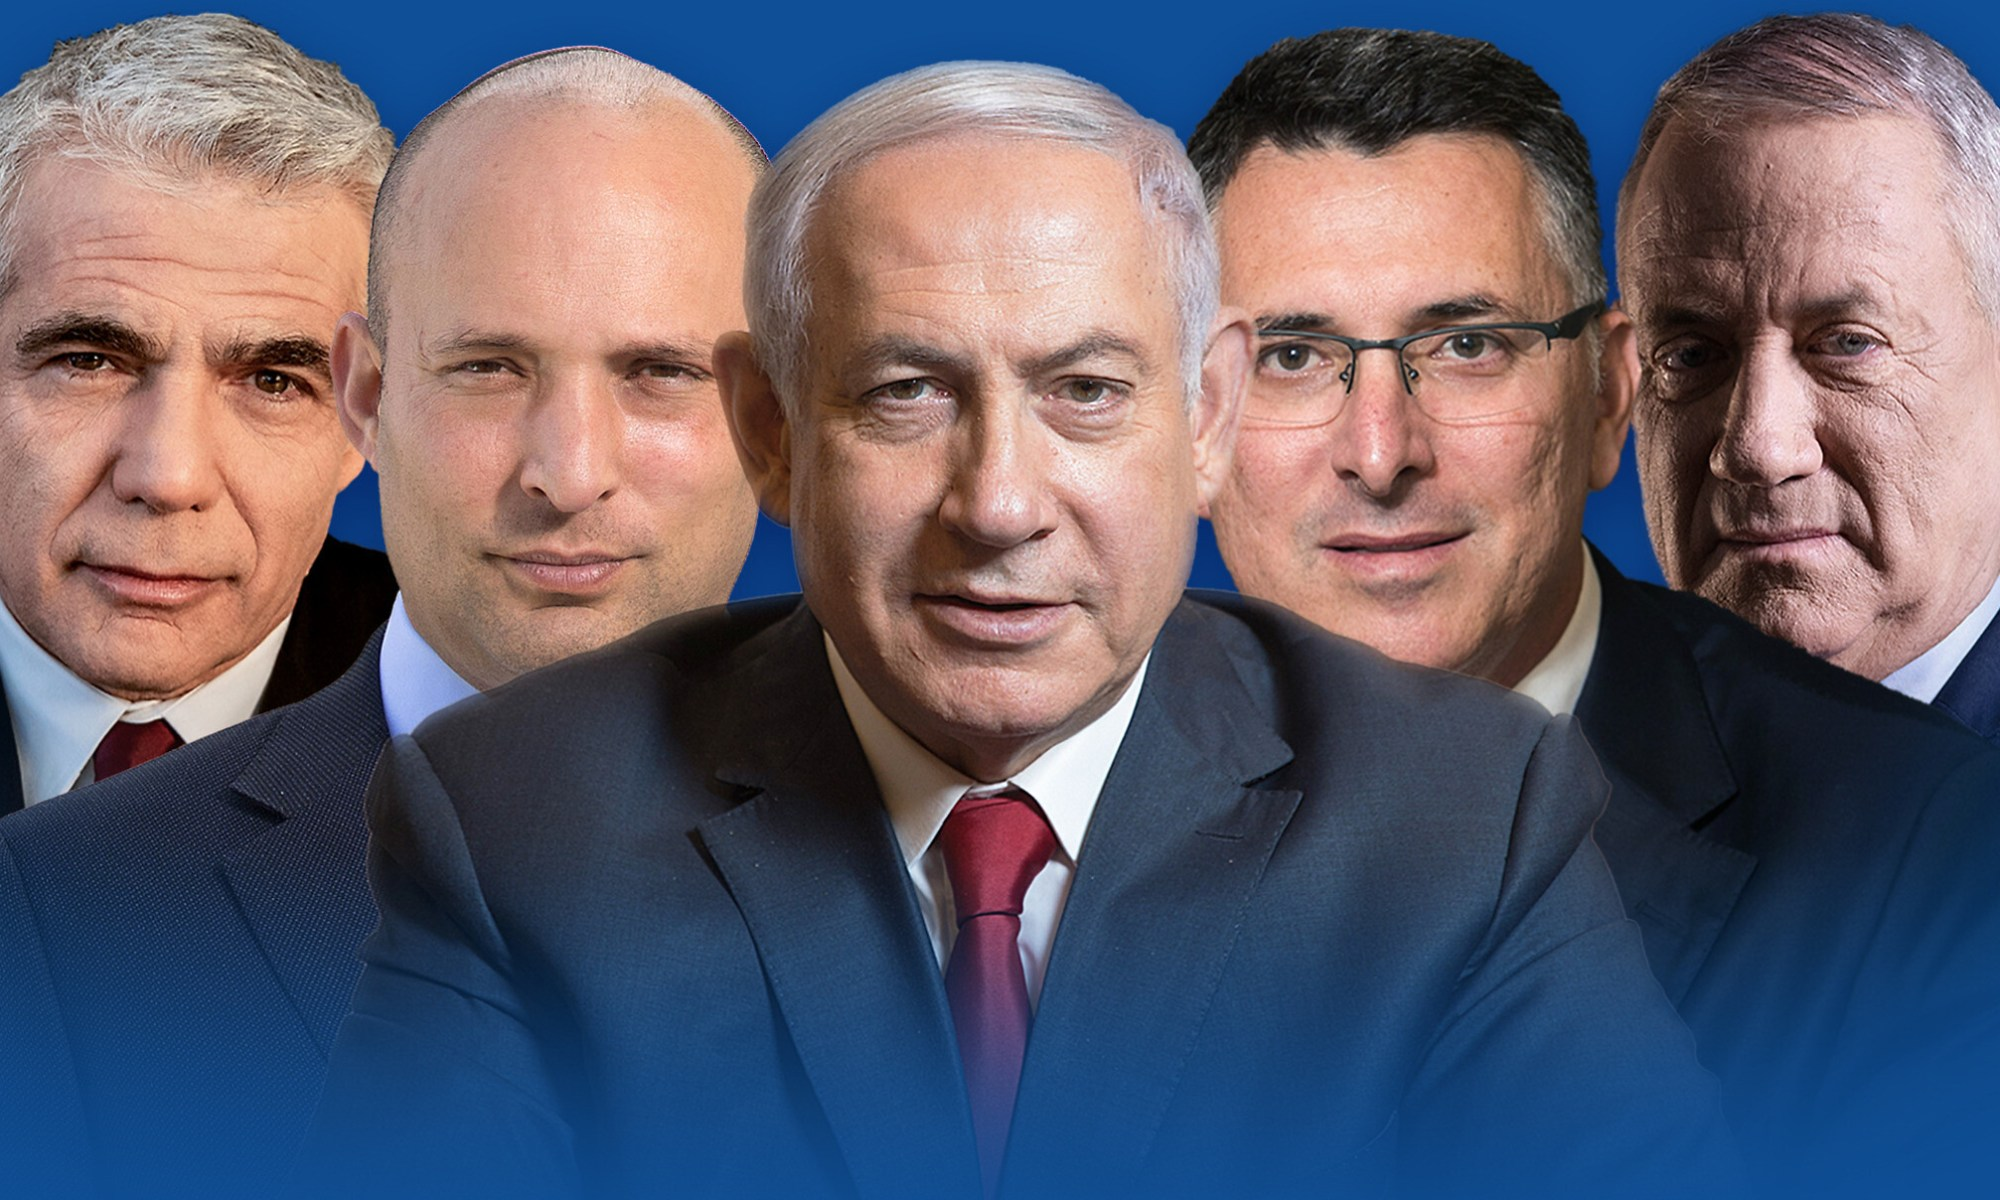 Graphic of Israeli party leaders with Netanyahu in the middle.